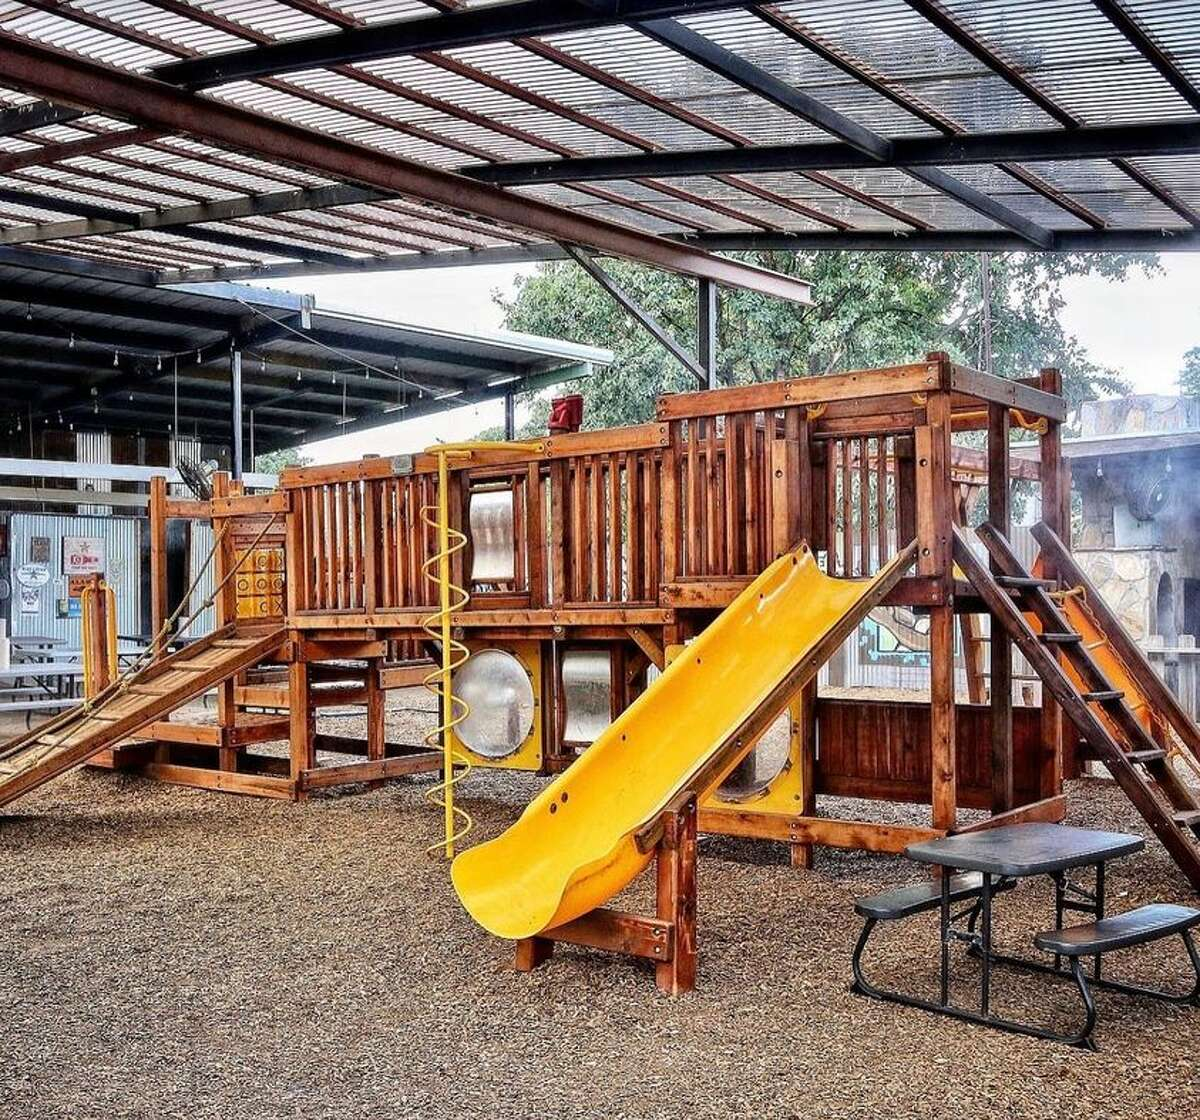 Add The Cove to the list of spots where parents can hangout while their kids play.